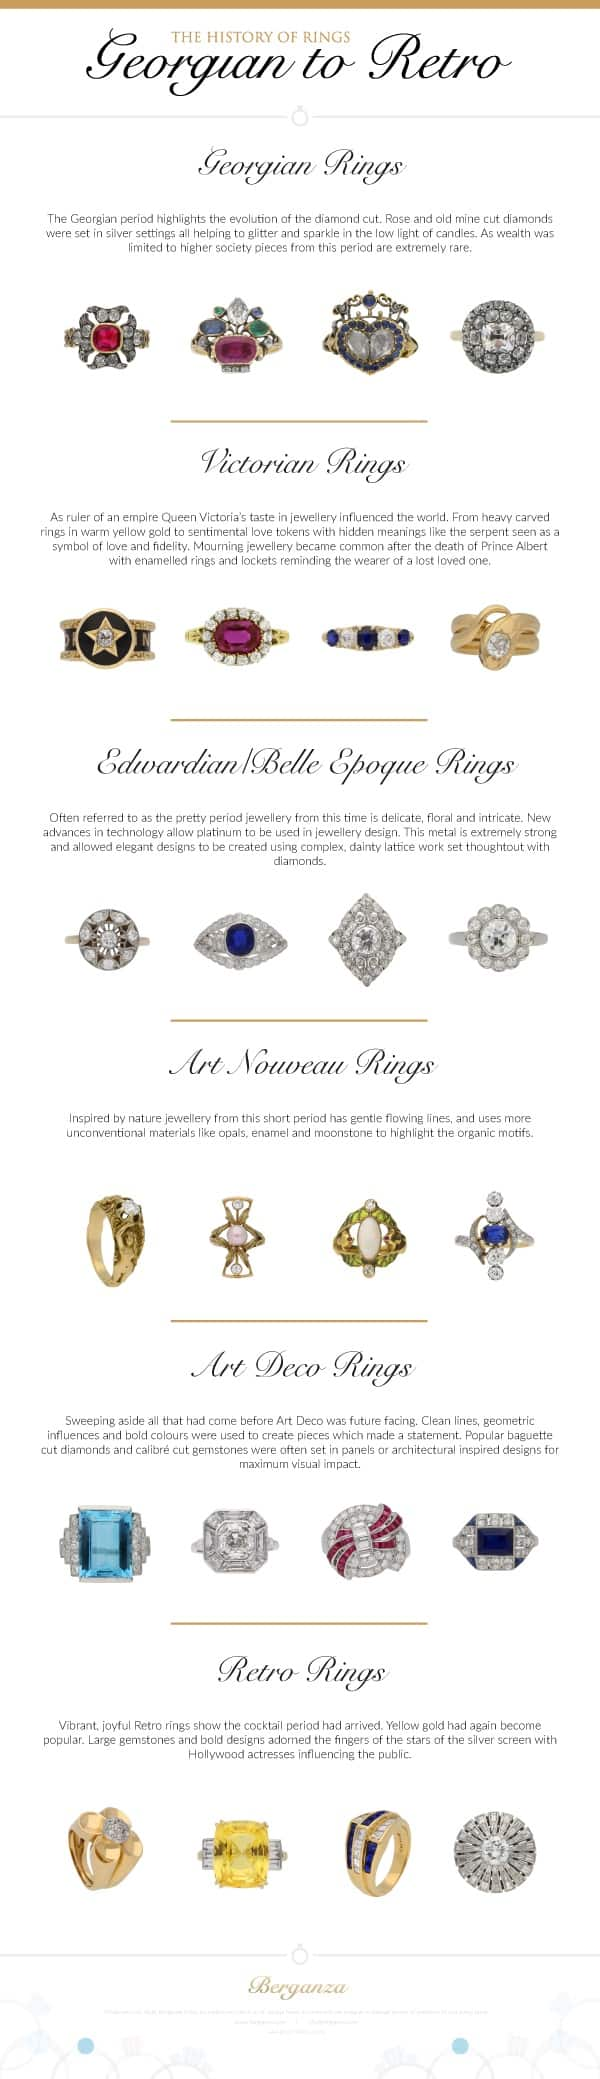 Georgian to Retro Rings - The history of engagement rings